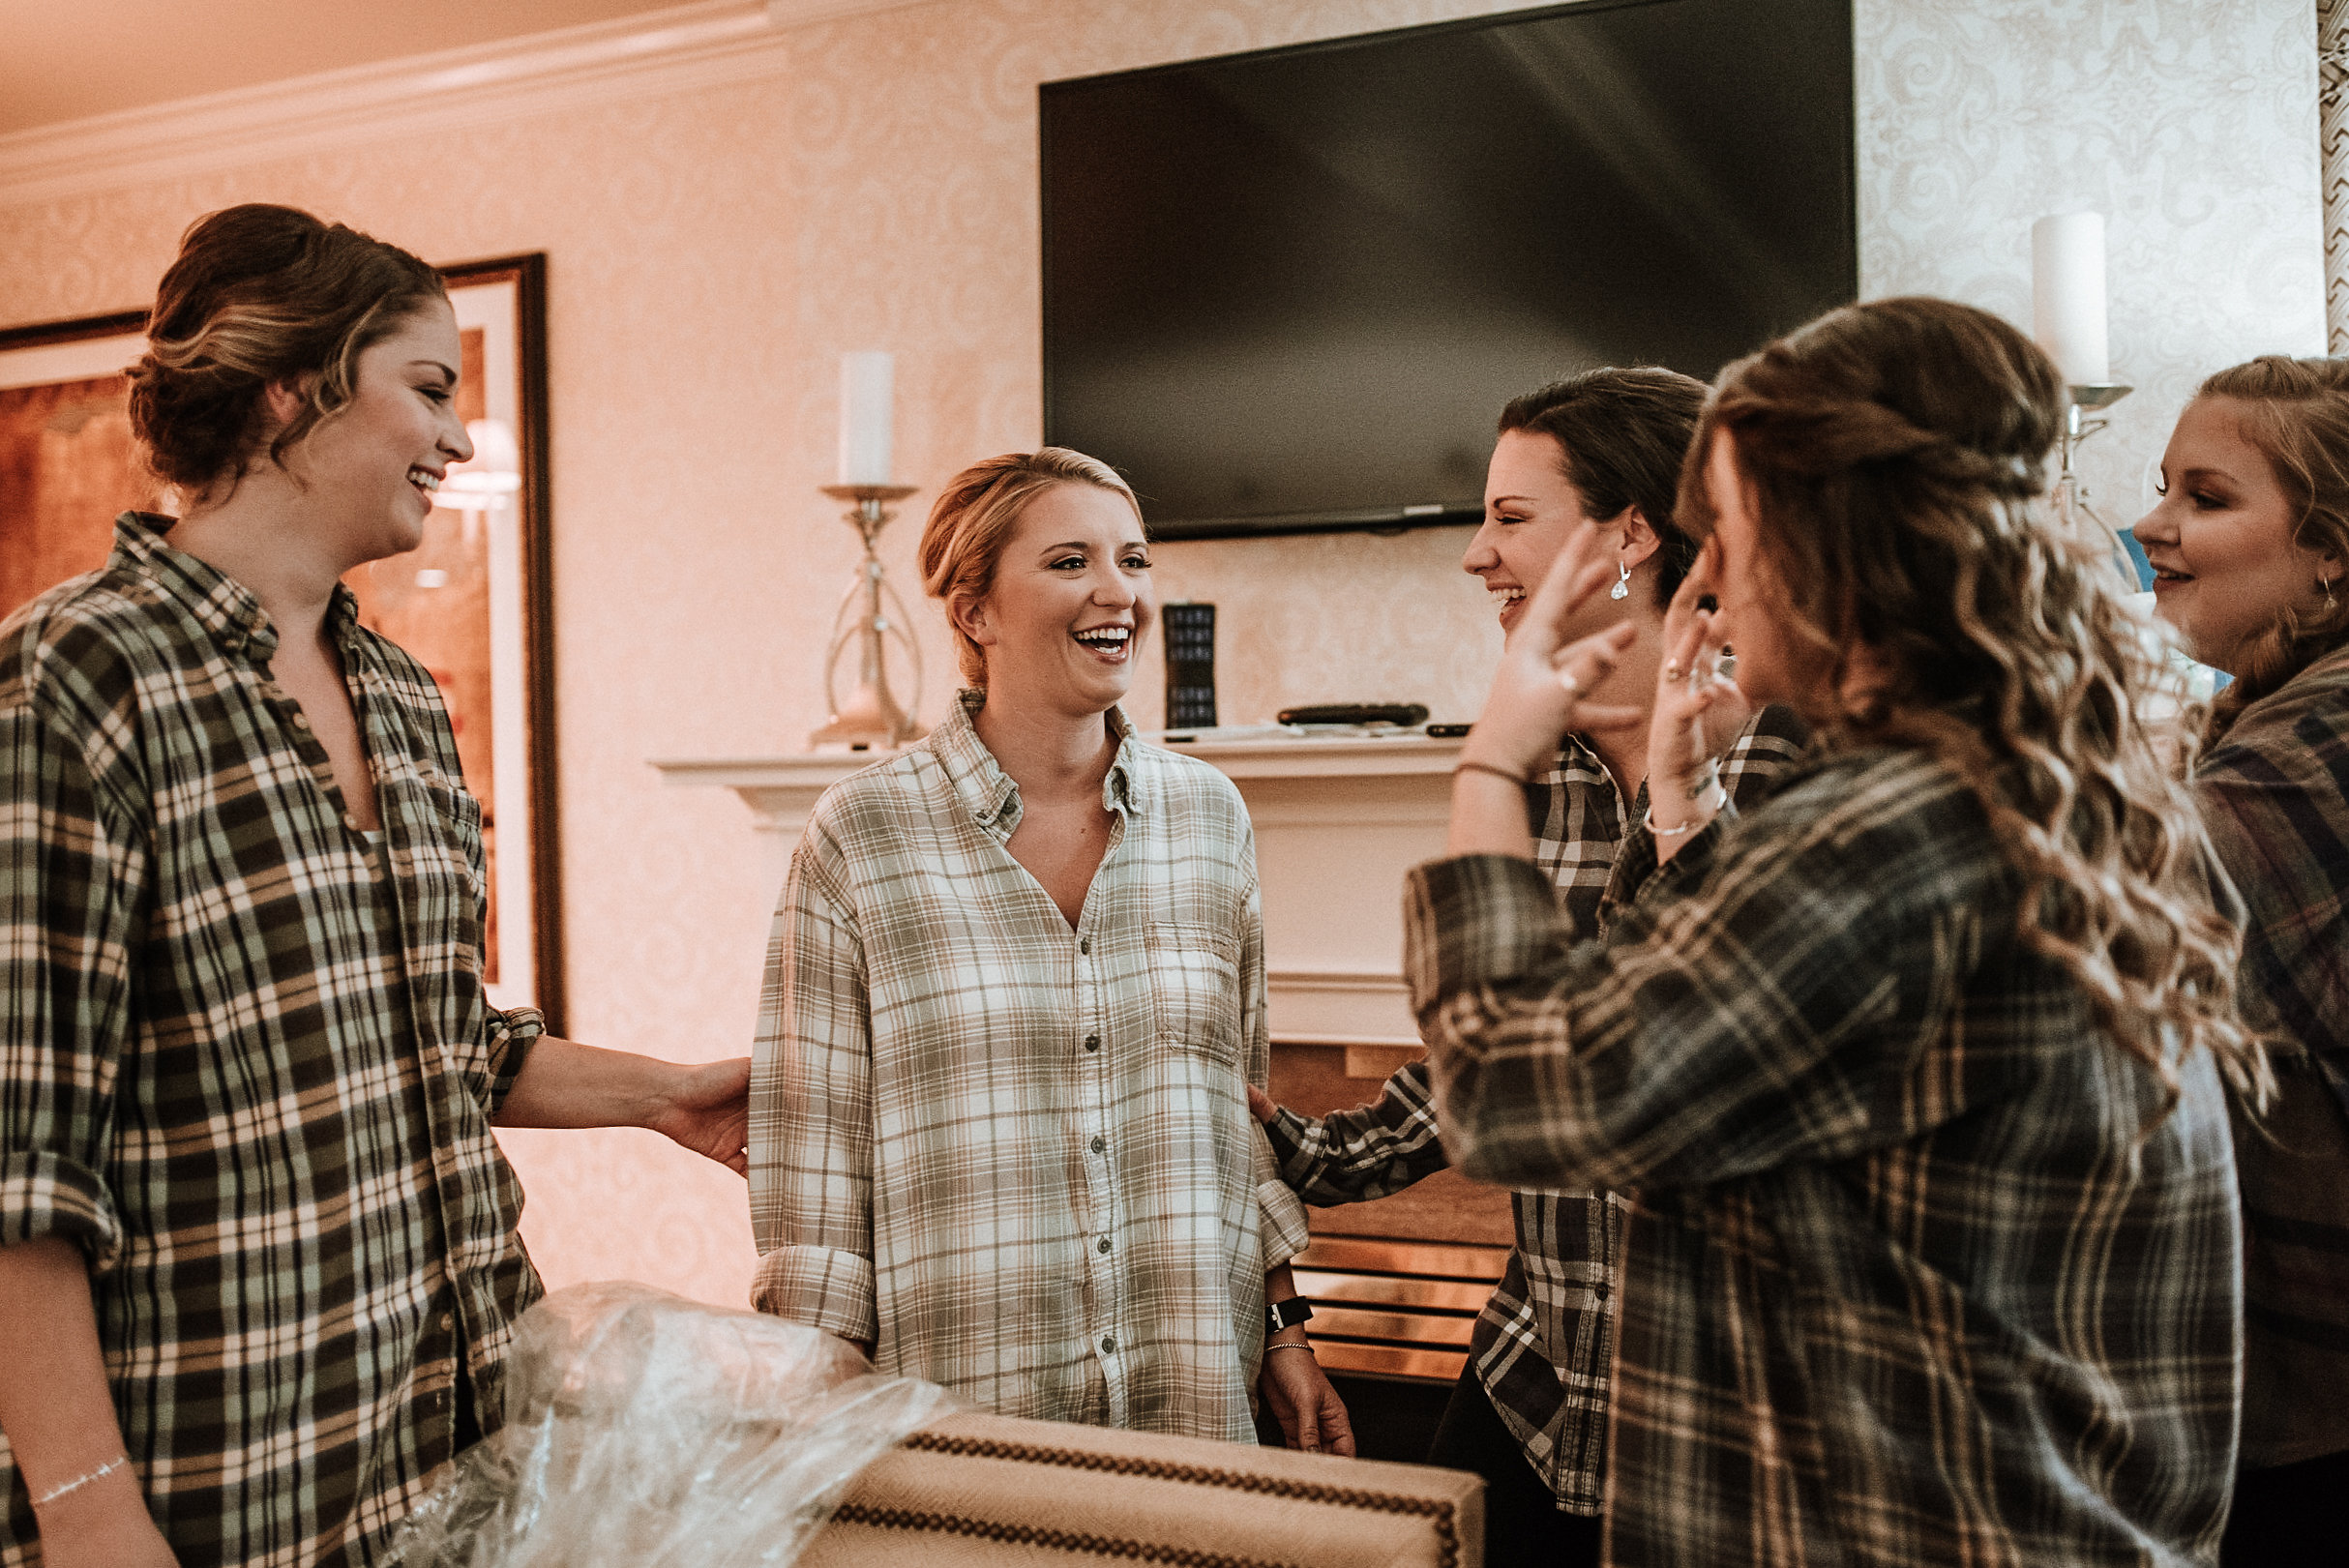 Bride before wedding in flannel